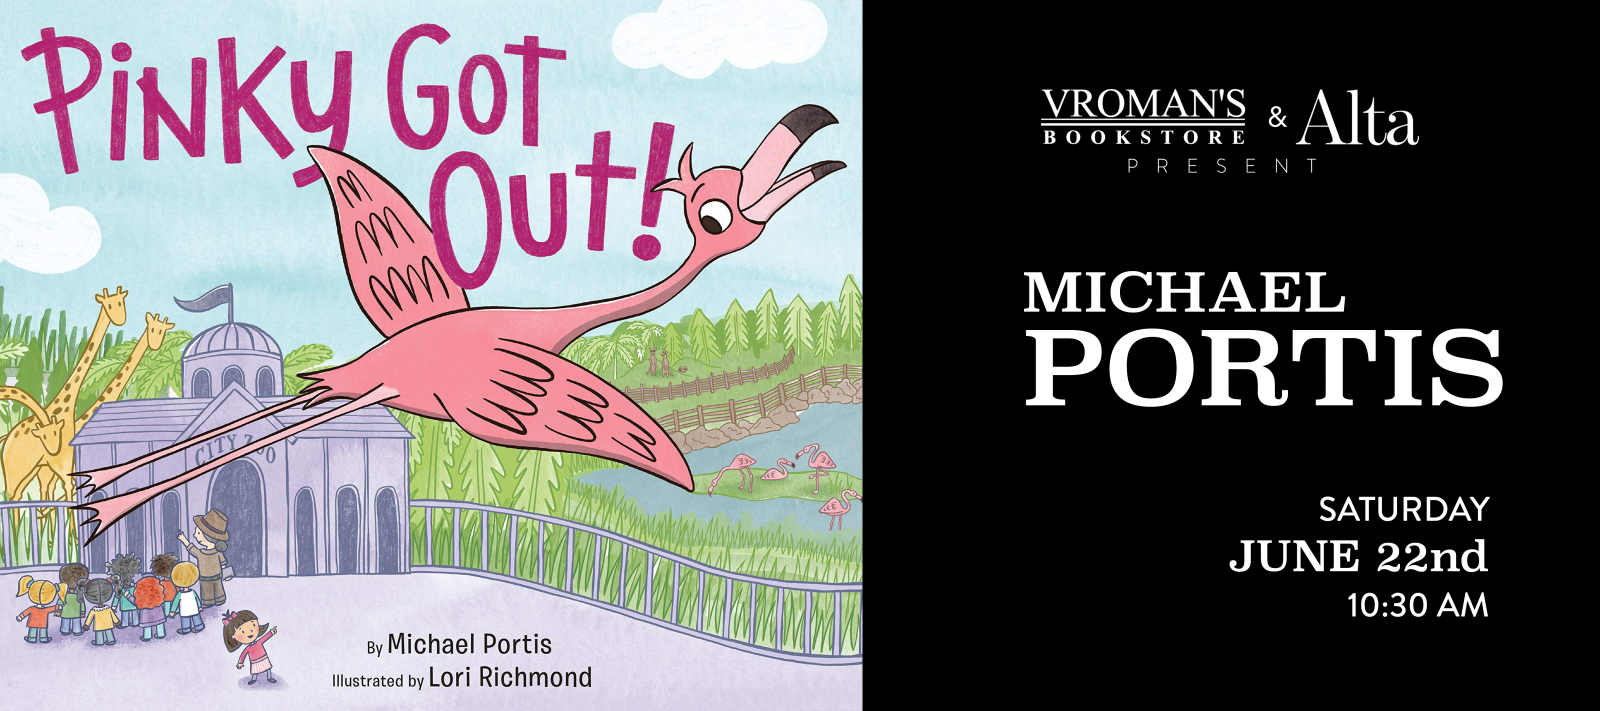 Michael Portis book signing Saturday June 22nd at 10:30am